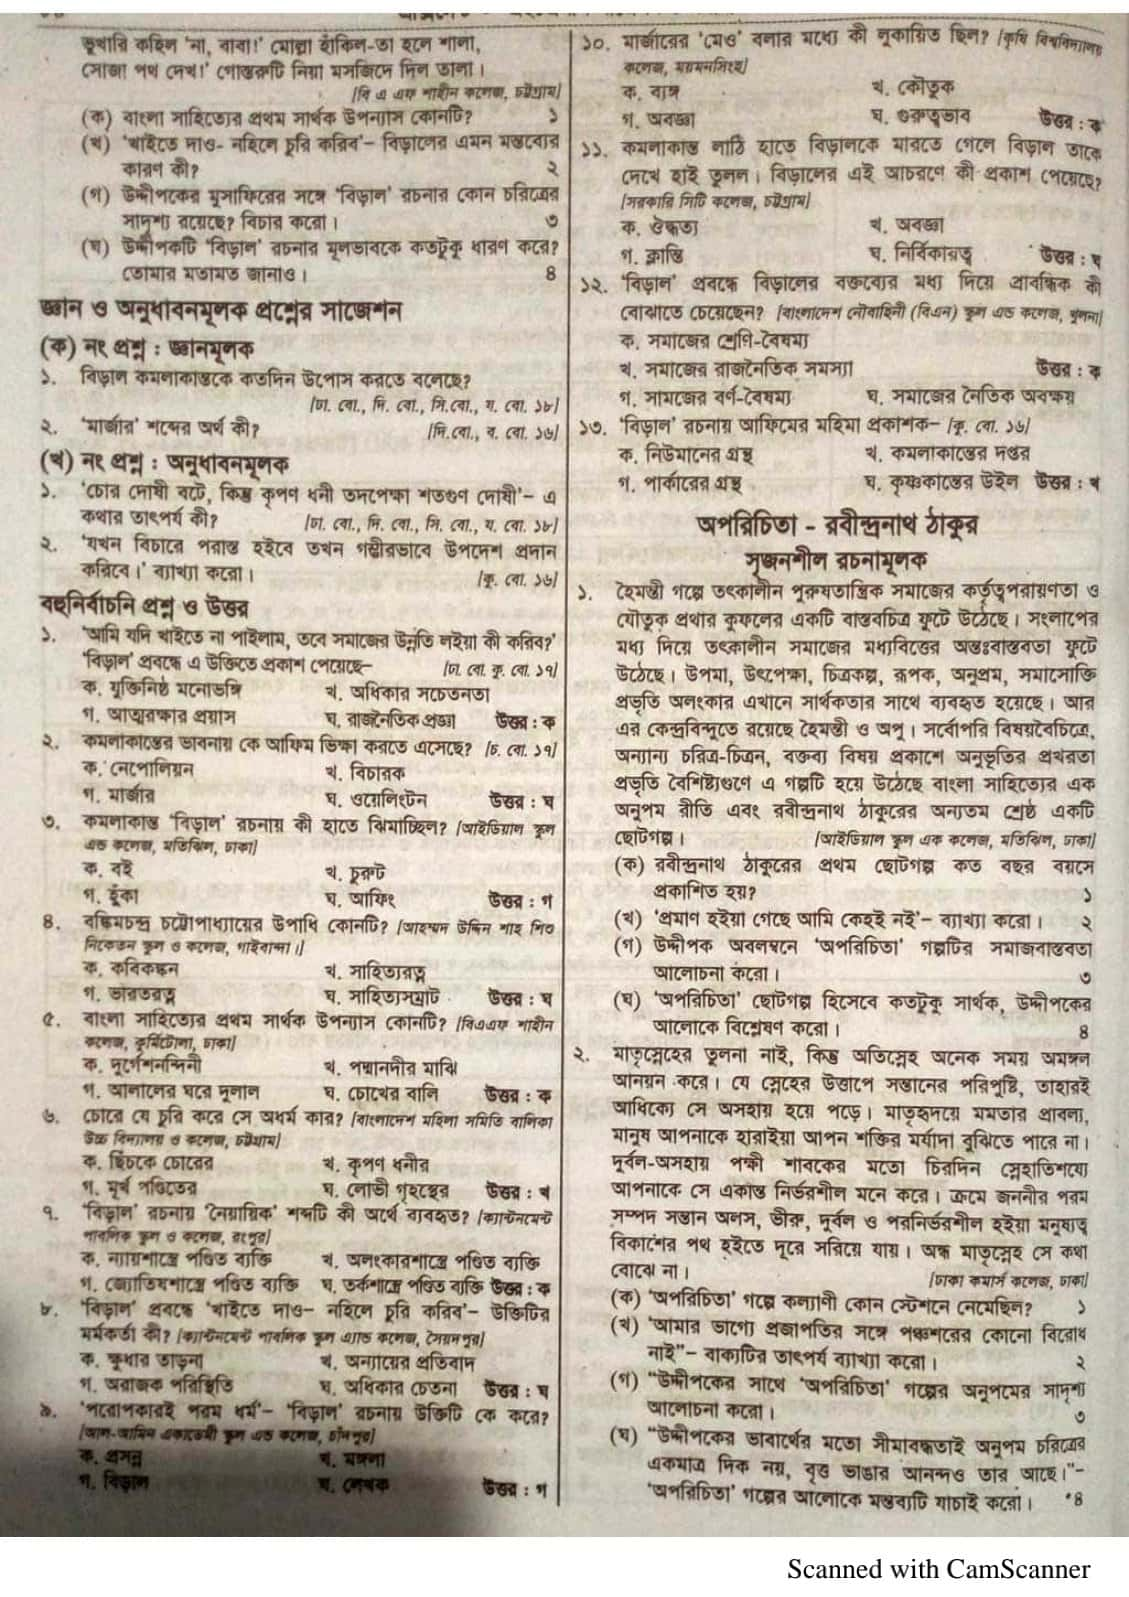 Hsc 2020 Bangla 1st Paper Suggetion | Hsc Bangla 1st Paper Suggetion 2020